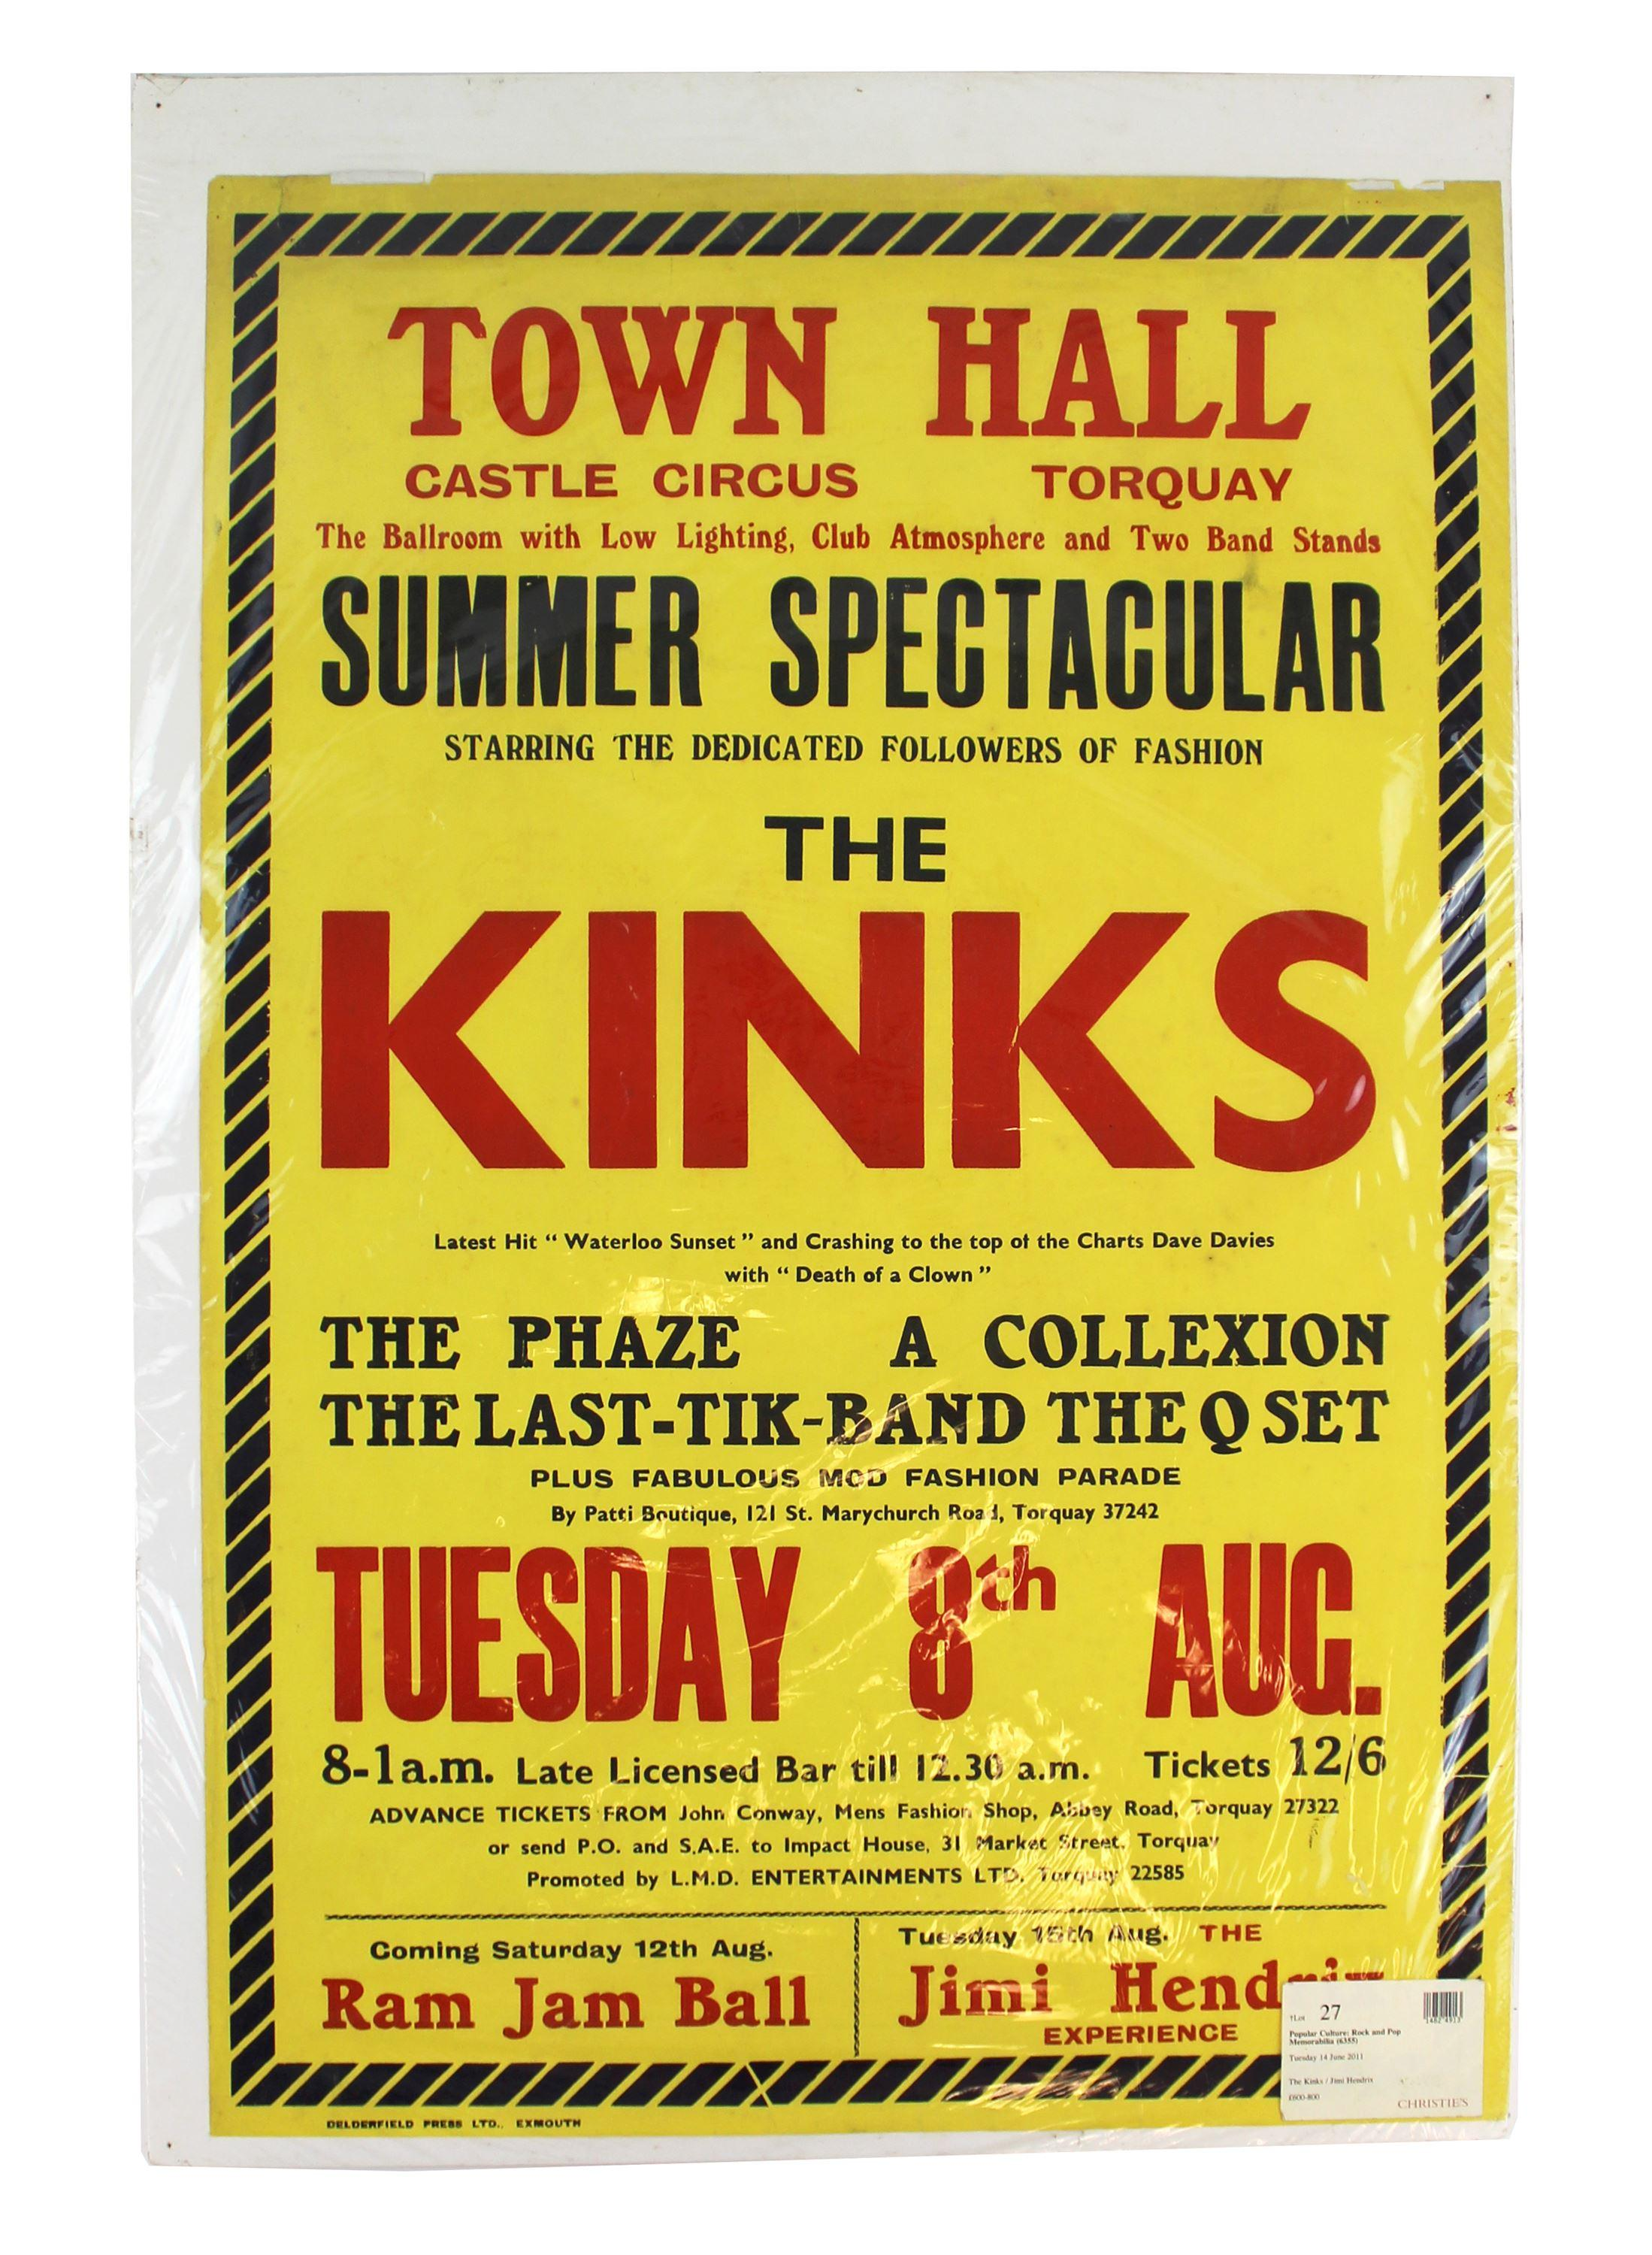 Jimi Hendrix and The Kinks Play at the Same Venue - Promotional Poster